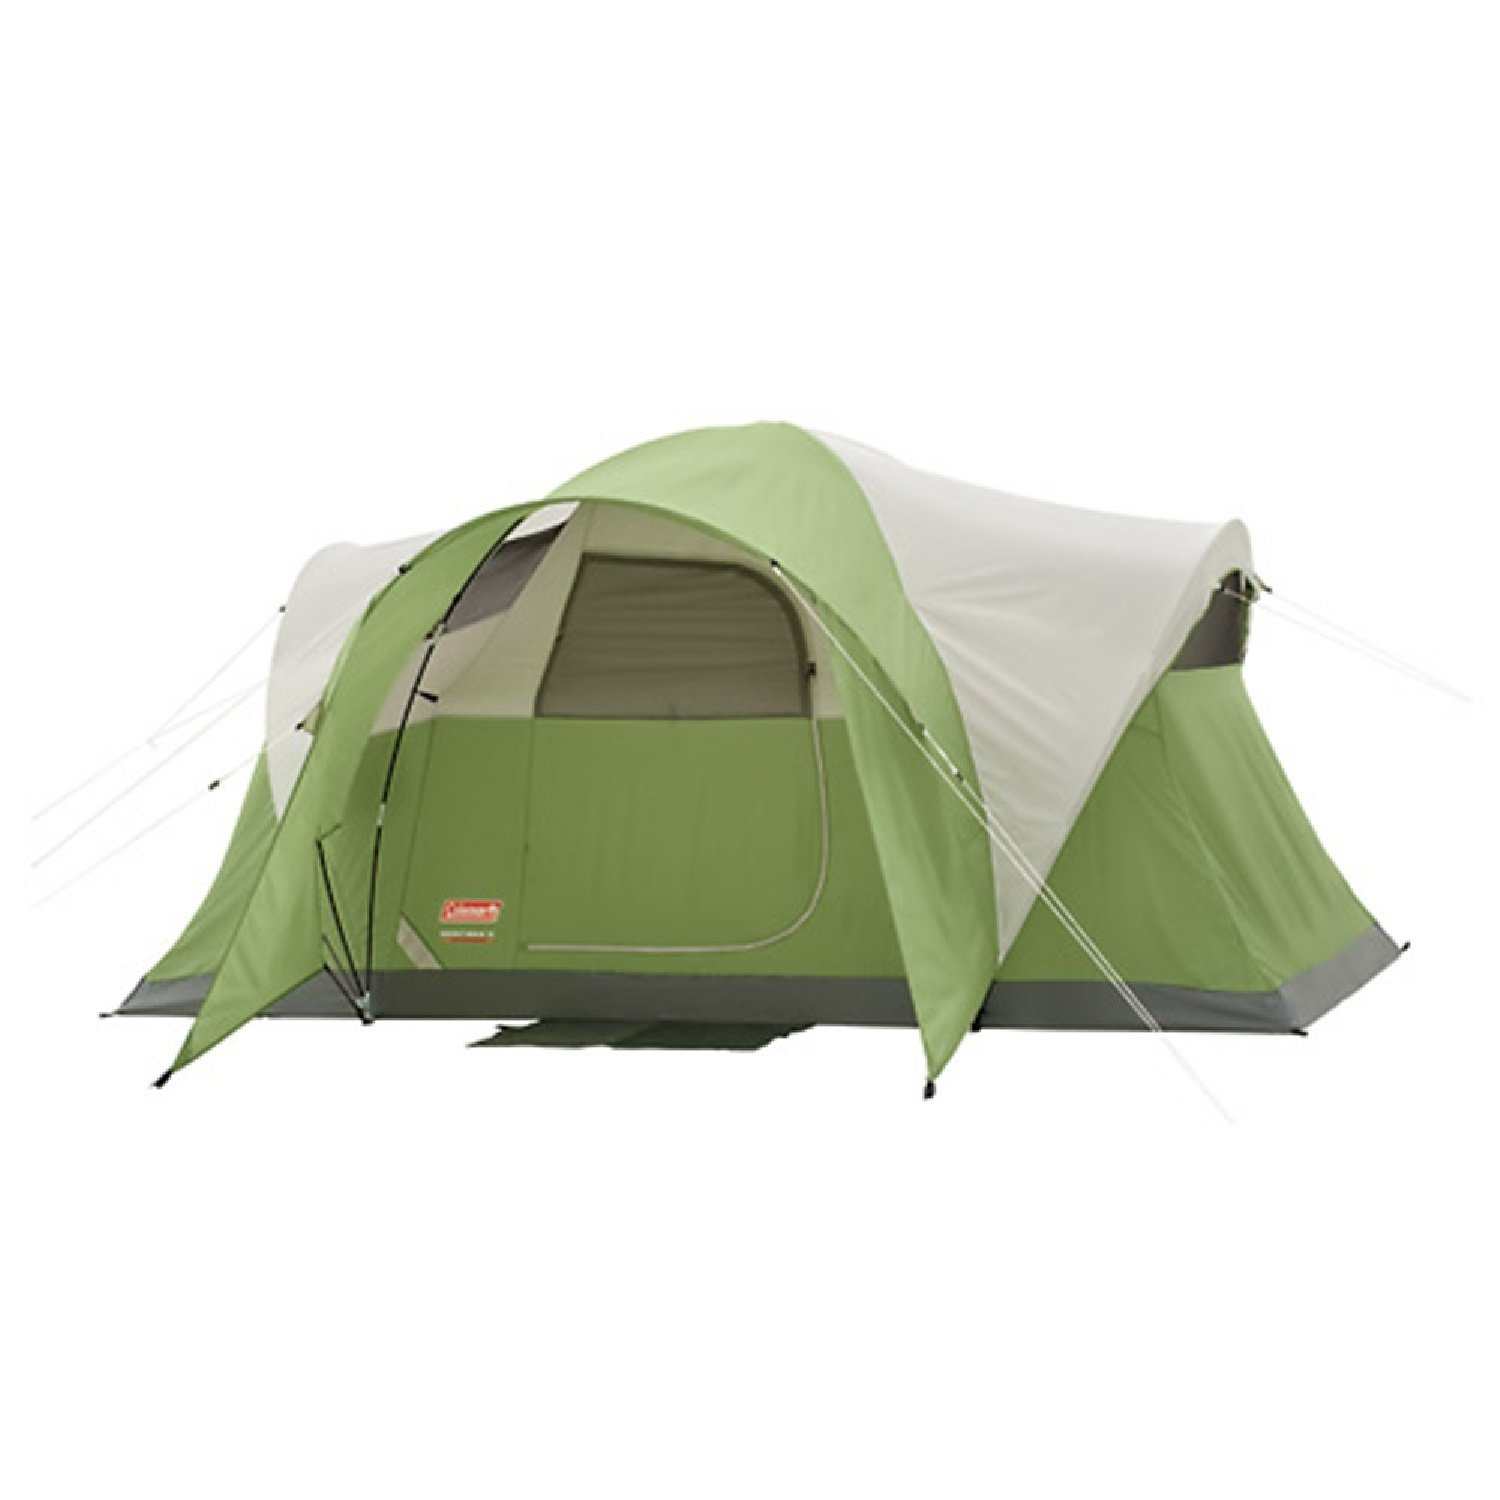 sc 1 st  Amazon.com & Amazon.com : Coleman Montana 6-Person Tent : Sports u0026 Outdoors